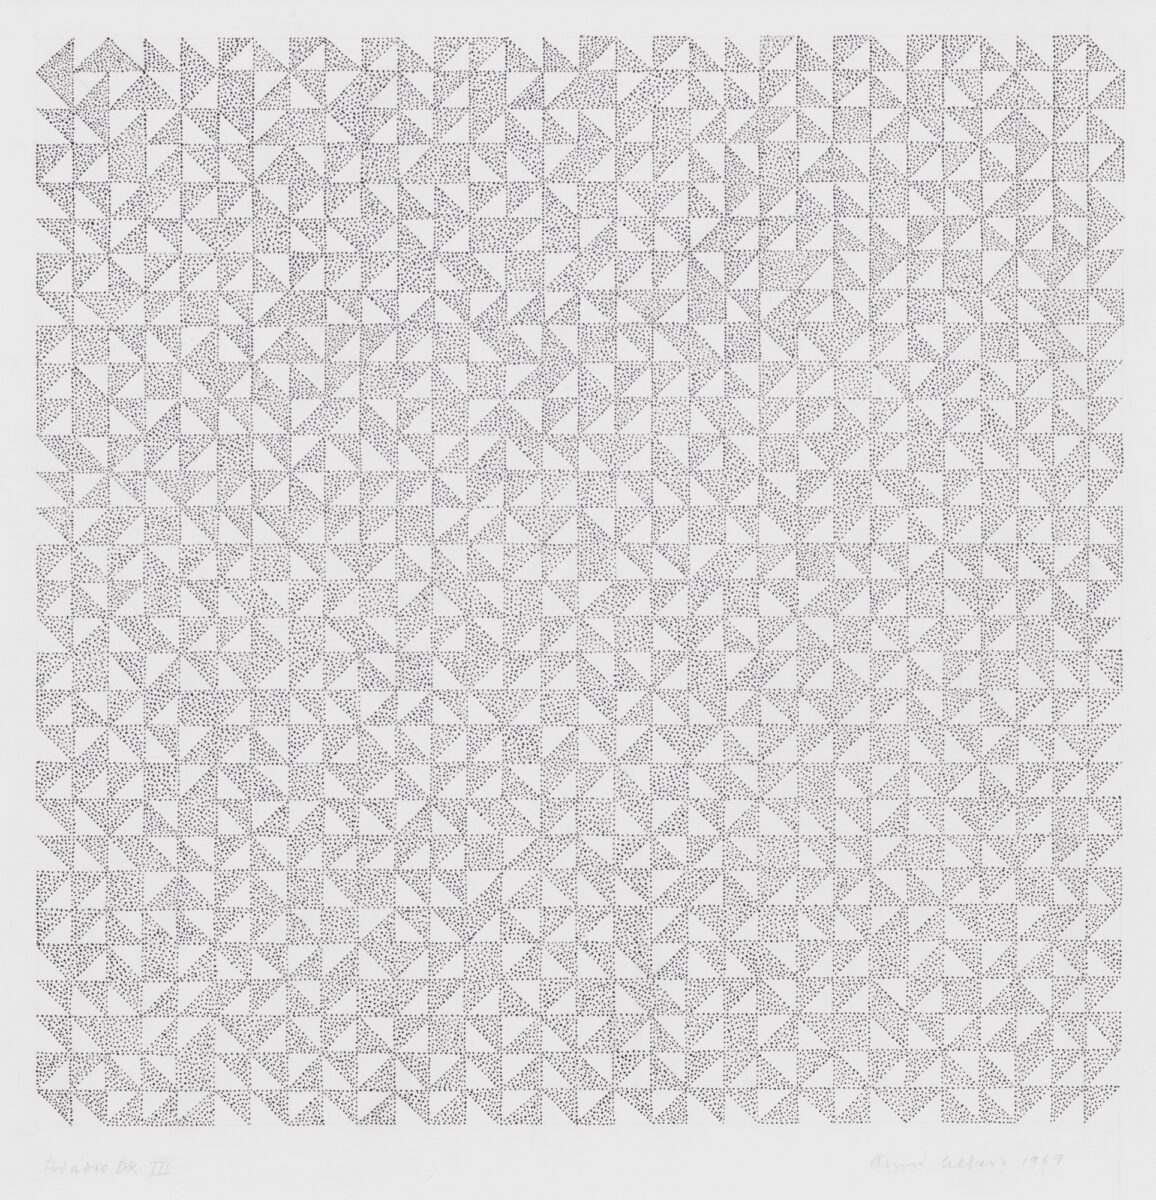 Anni Albers Triadic DR II original ink and graphite drawing for sale